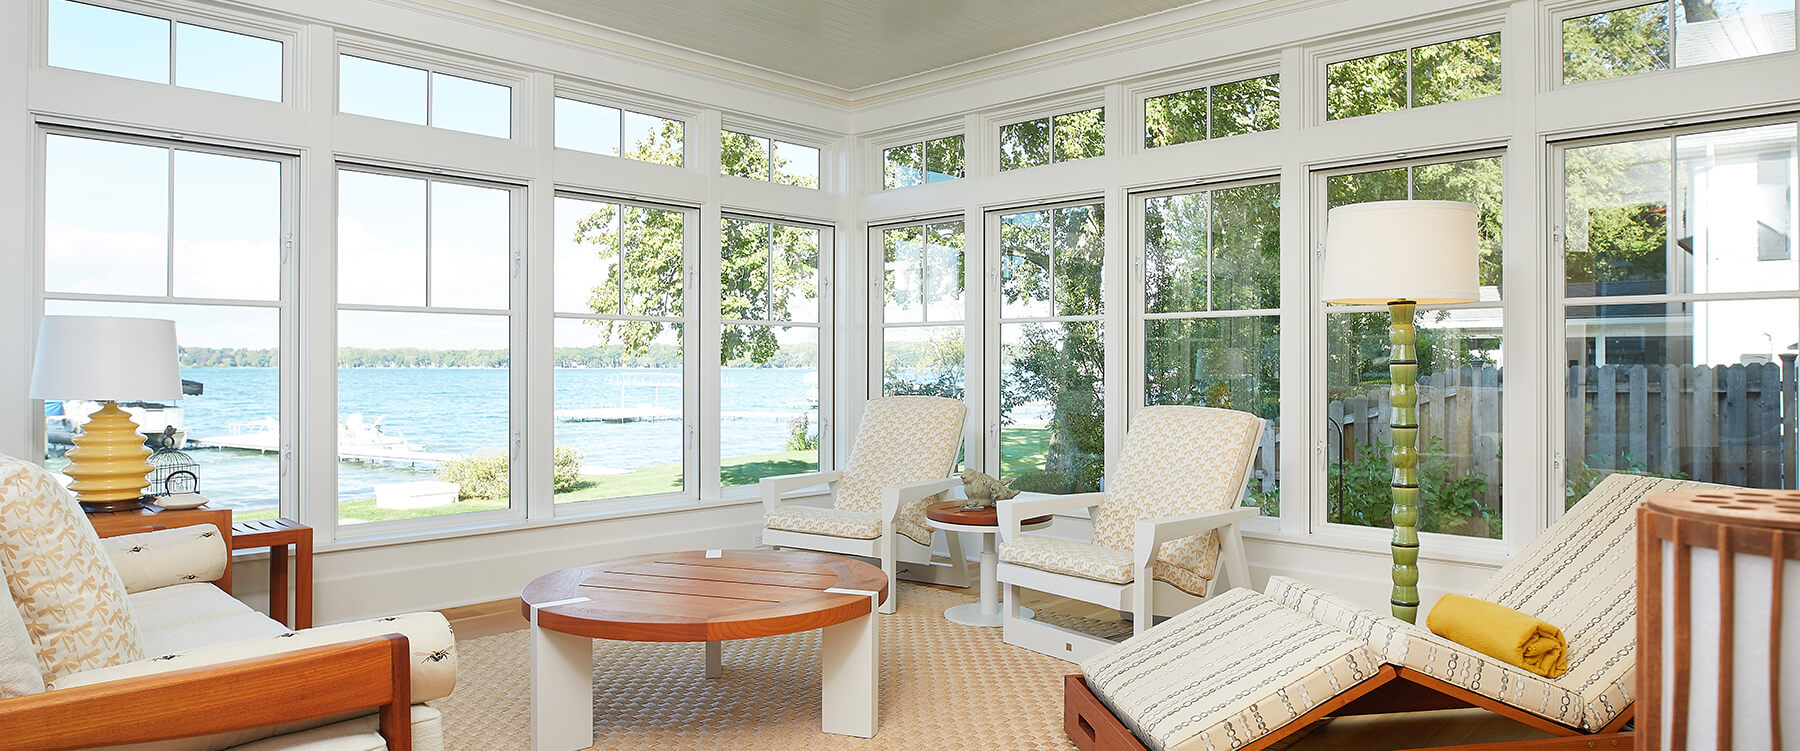 Lakefront cottage sun room